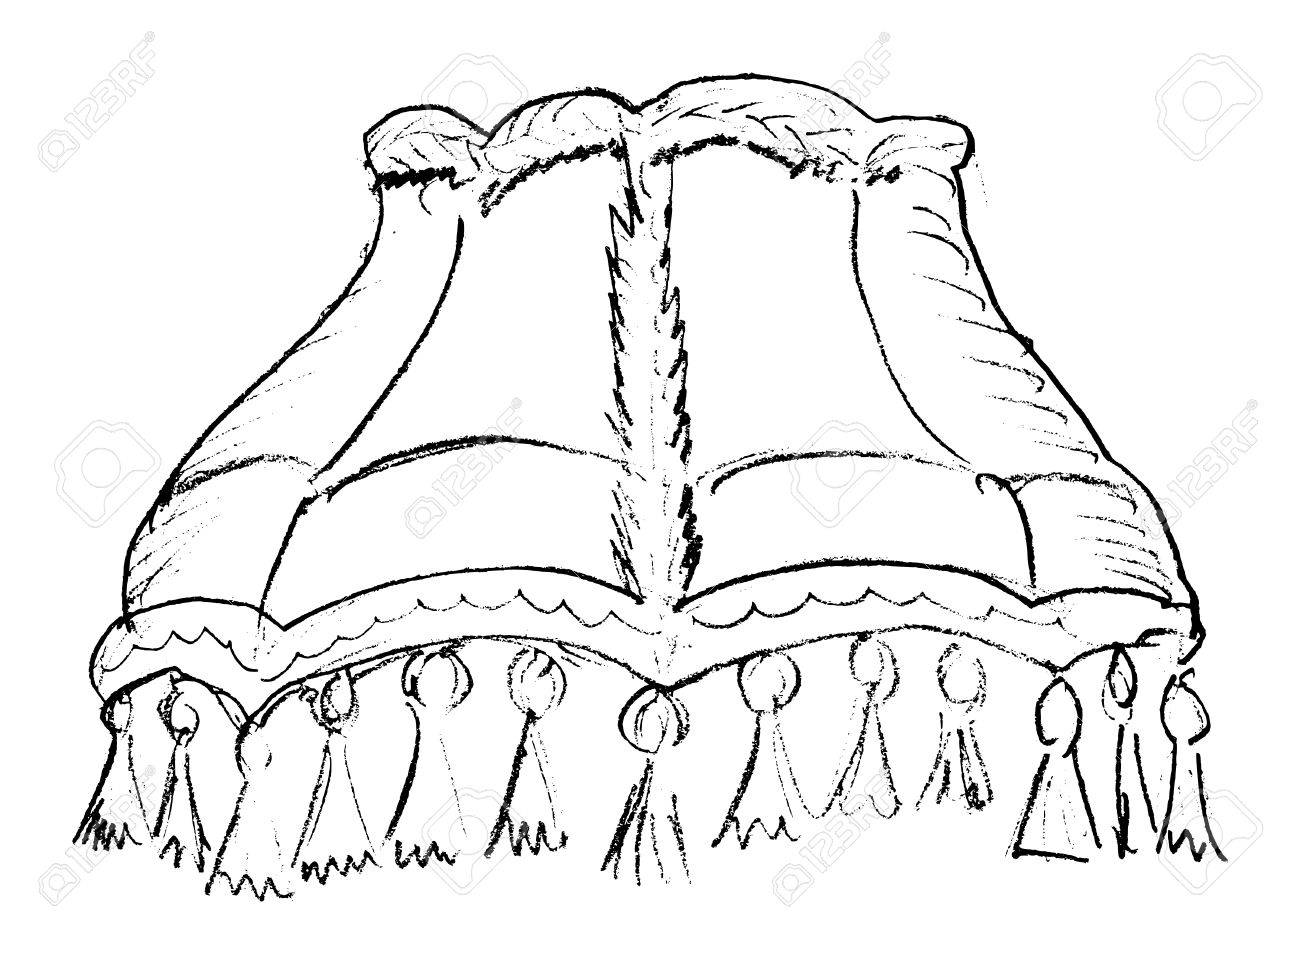 Hand Drawn Vector Sketch Illustration Of Lampshade Royalty Free Cliparts Vectors And Stock Illustration Image 21387285